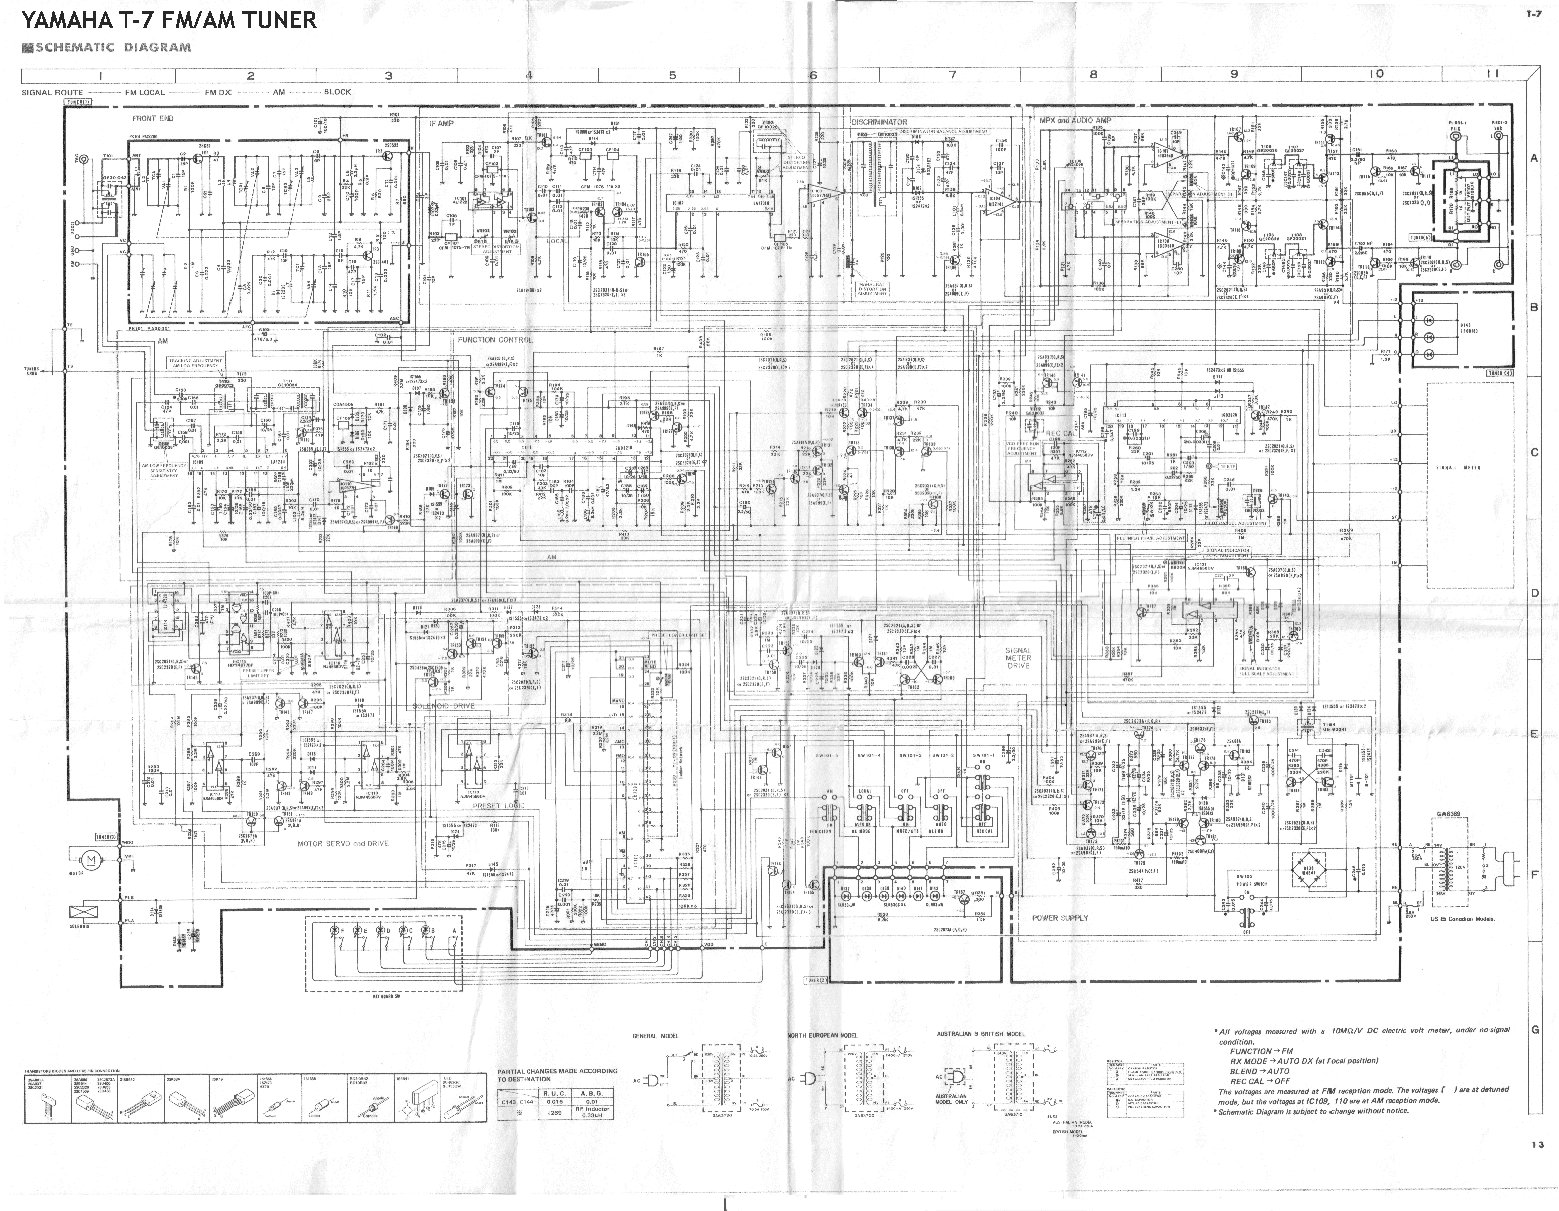 circuit diagram jammer  gt  circuits  gt  police laser lidar jammers l34798 next gr   gt  circuits  gt  police laser lidar jammers l34798 next gr